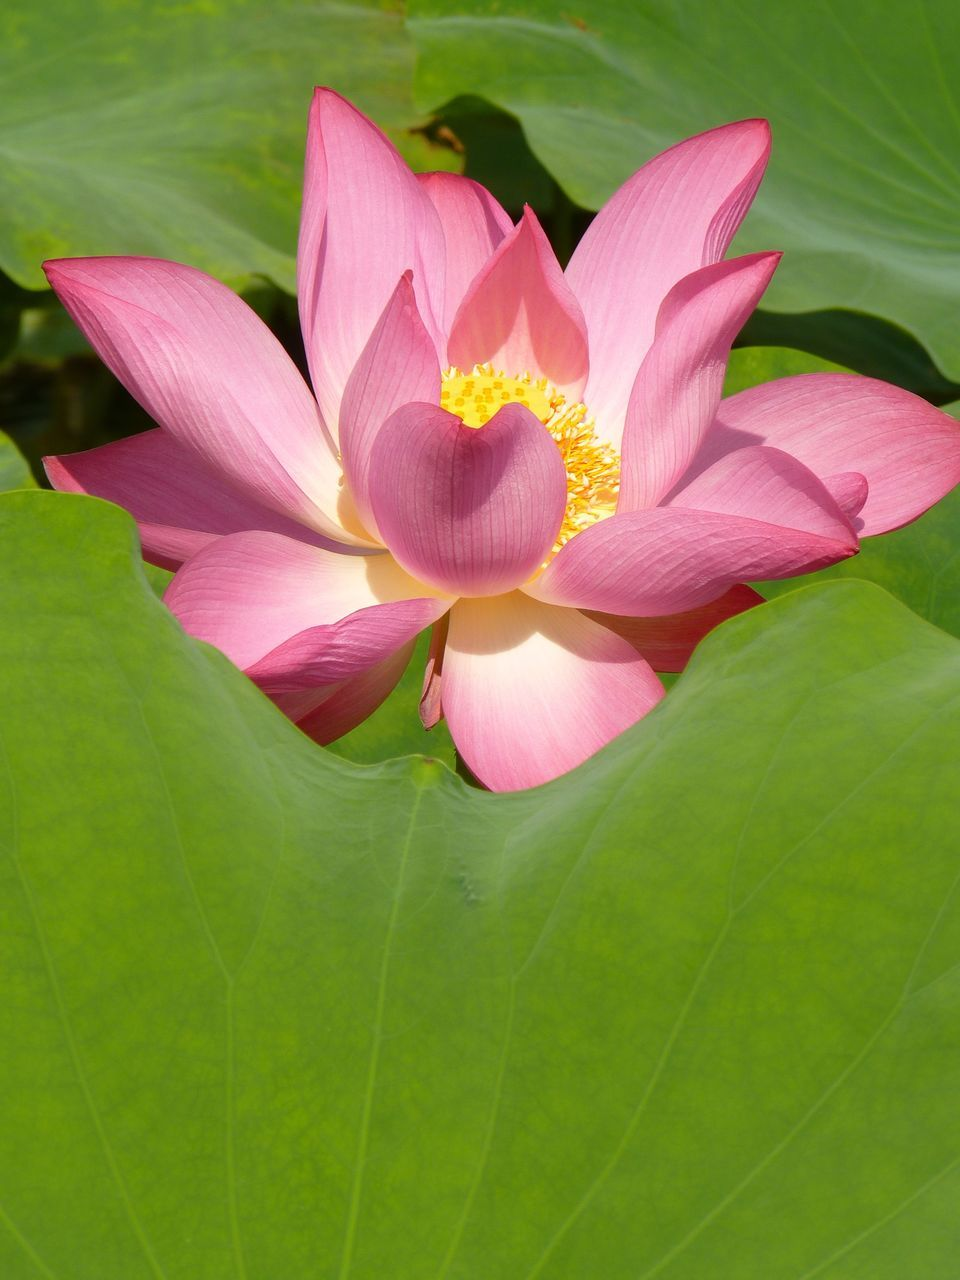 leaf, flower, petal, nature, beauty in nature, fragility, growth, flower head, freshness, pink color, close-up, green color, lotus water lily, plant, no people, lotus, day, blooming, outdoors